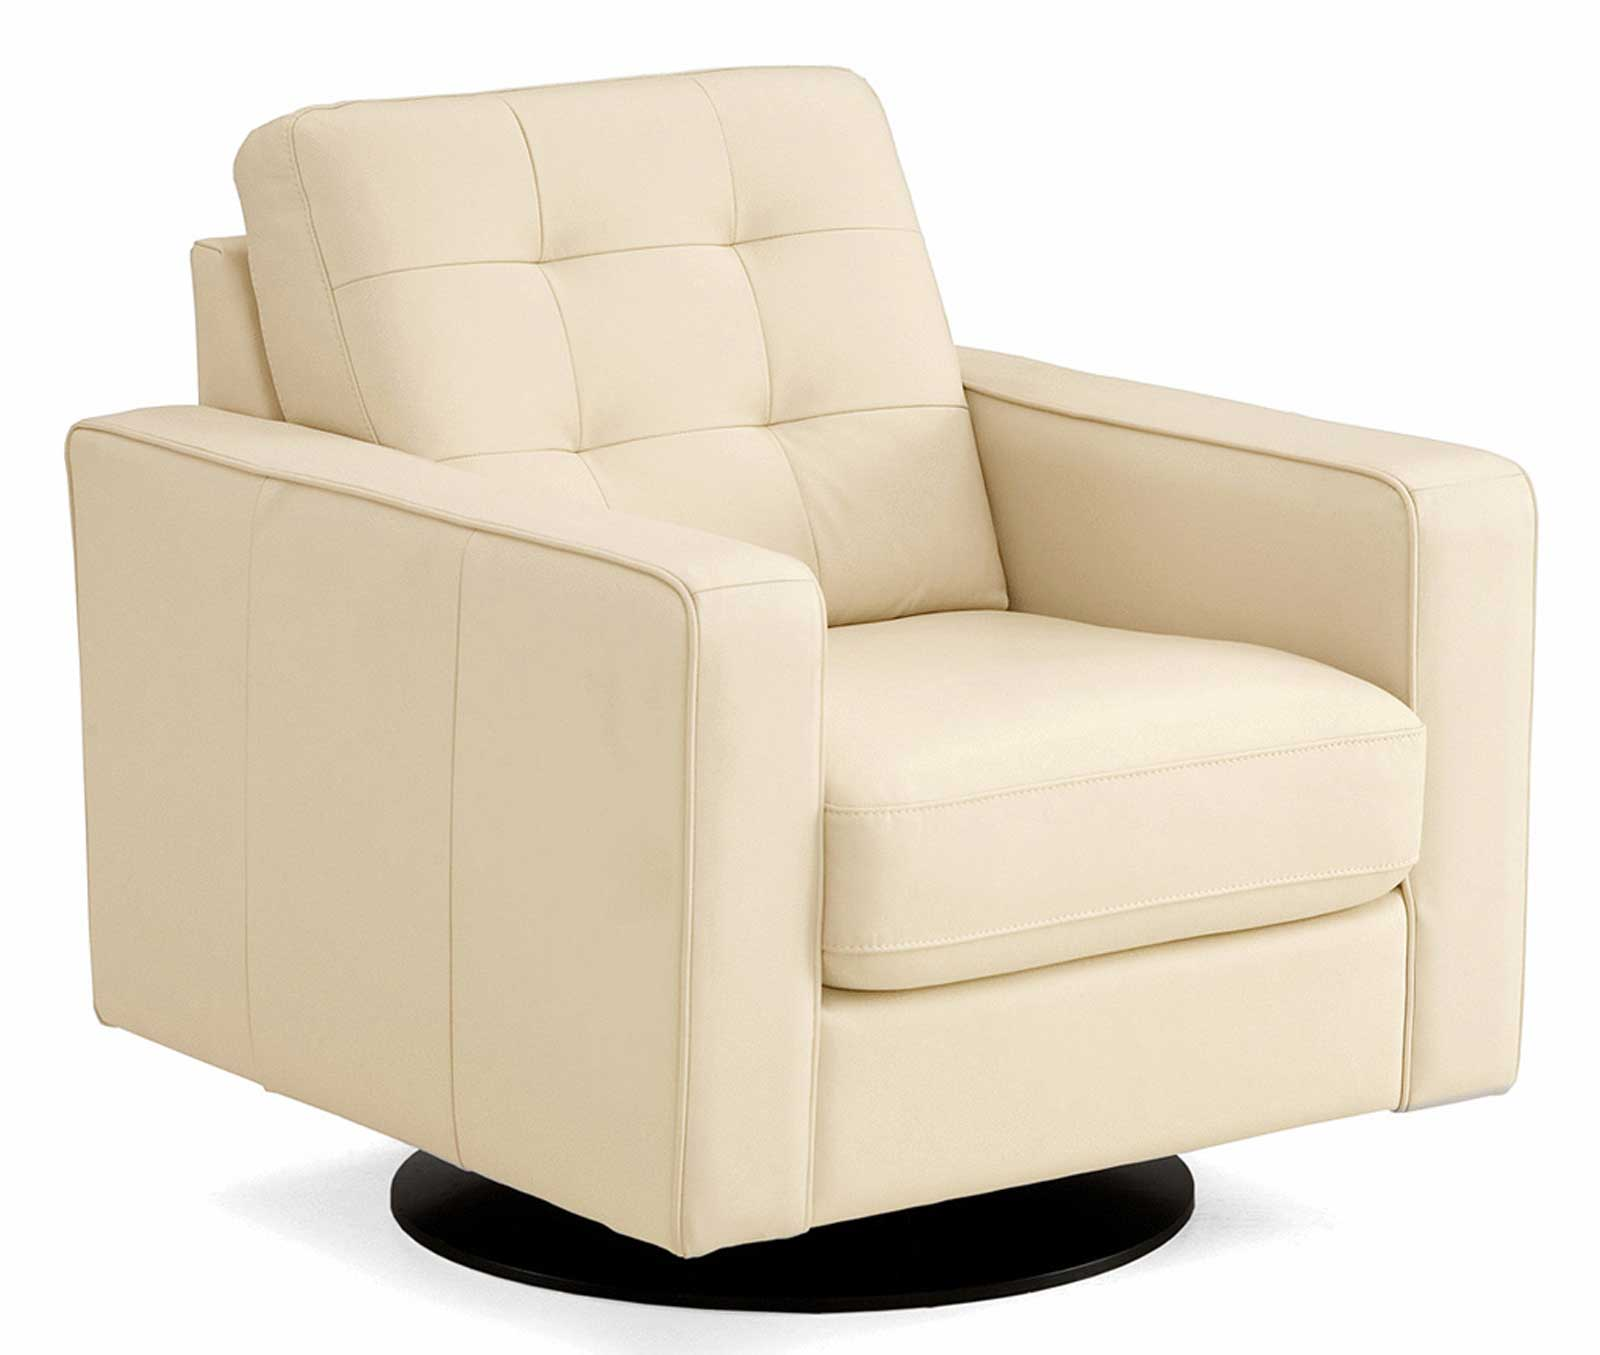 leather swivel chair ohio state office chairs for home user